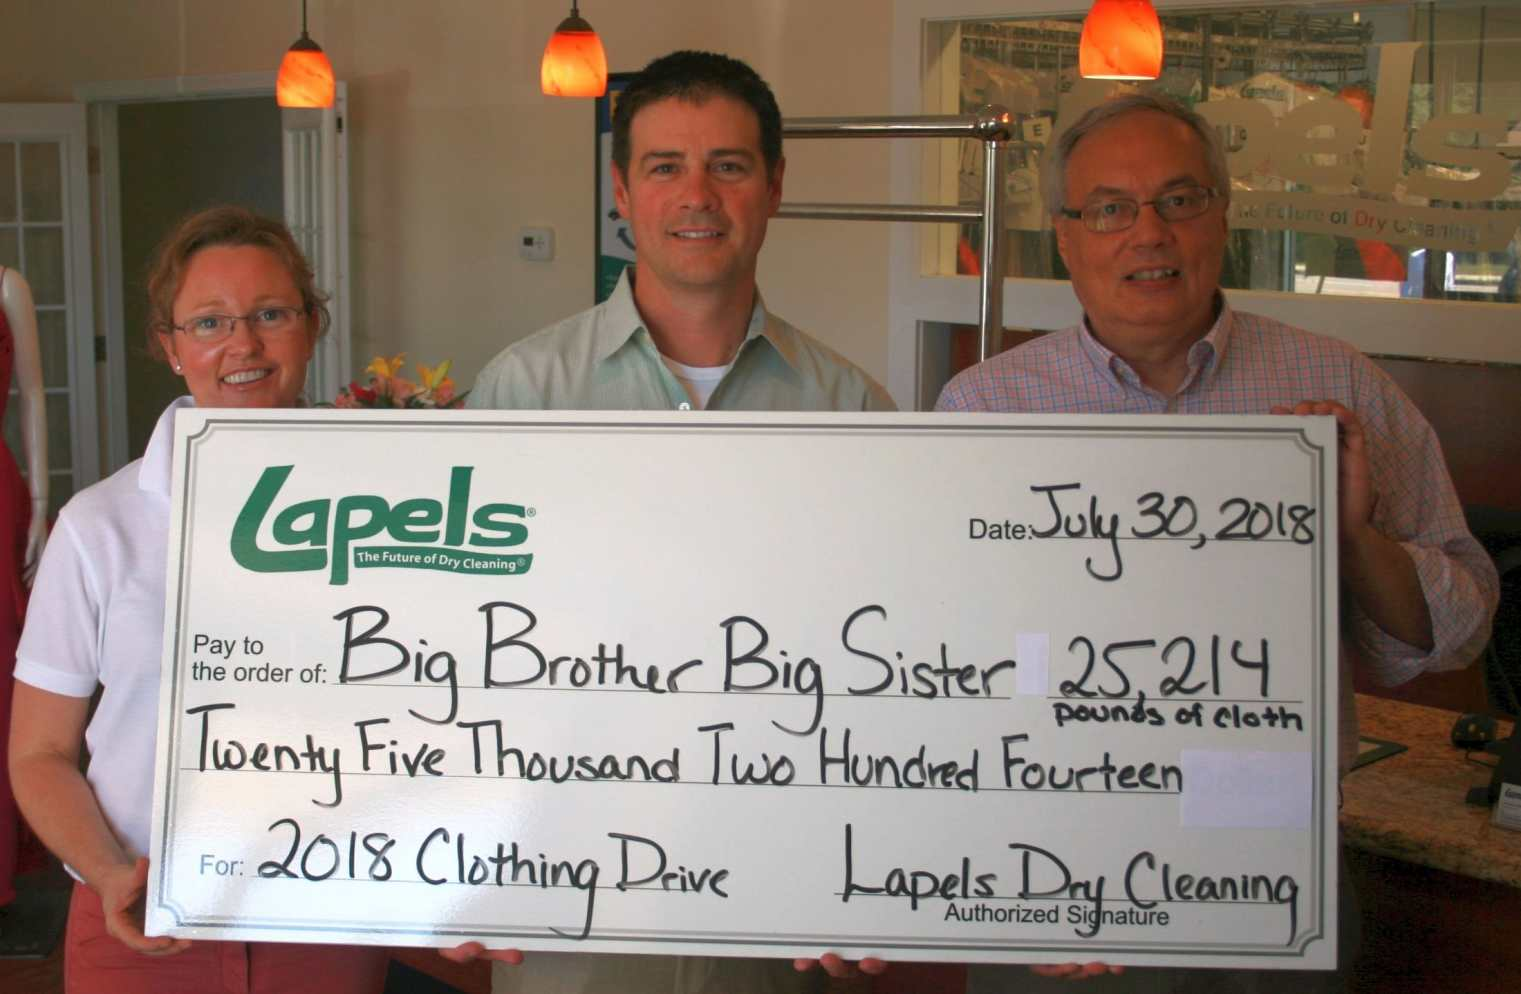 Lapels Dry Cleaning's drive to benefit Big Brother Big Sister